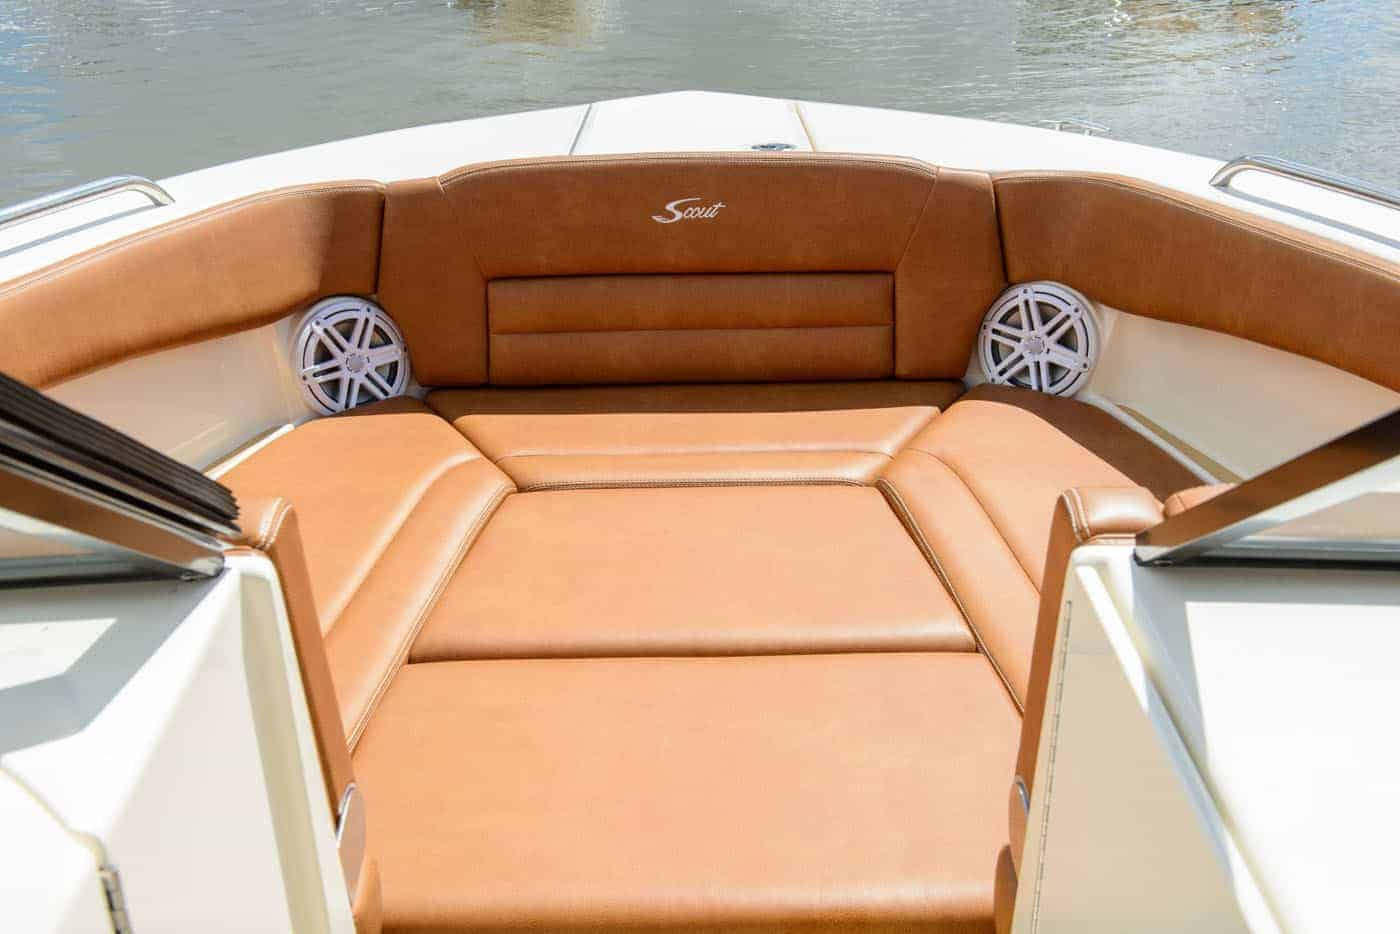 255D full bow seating with filler cushion